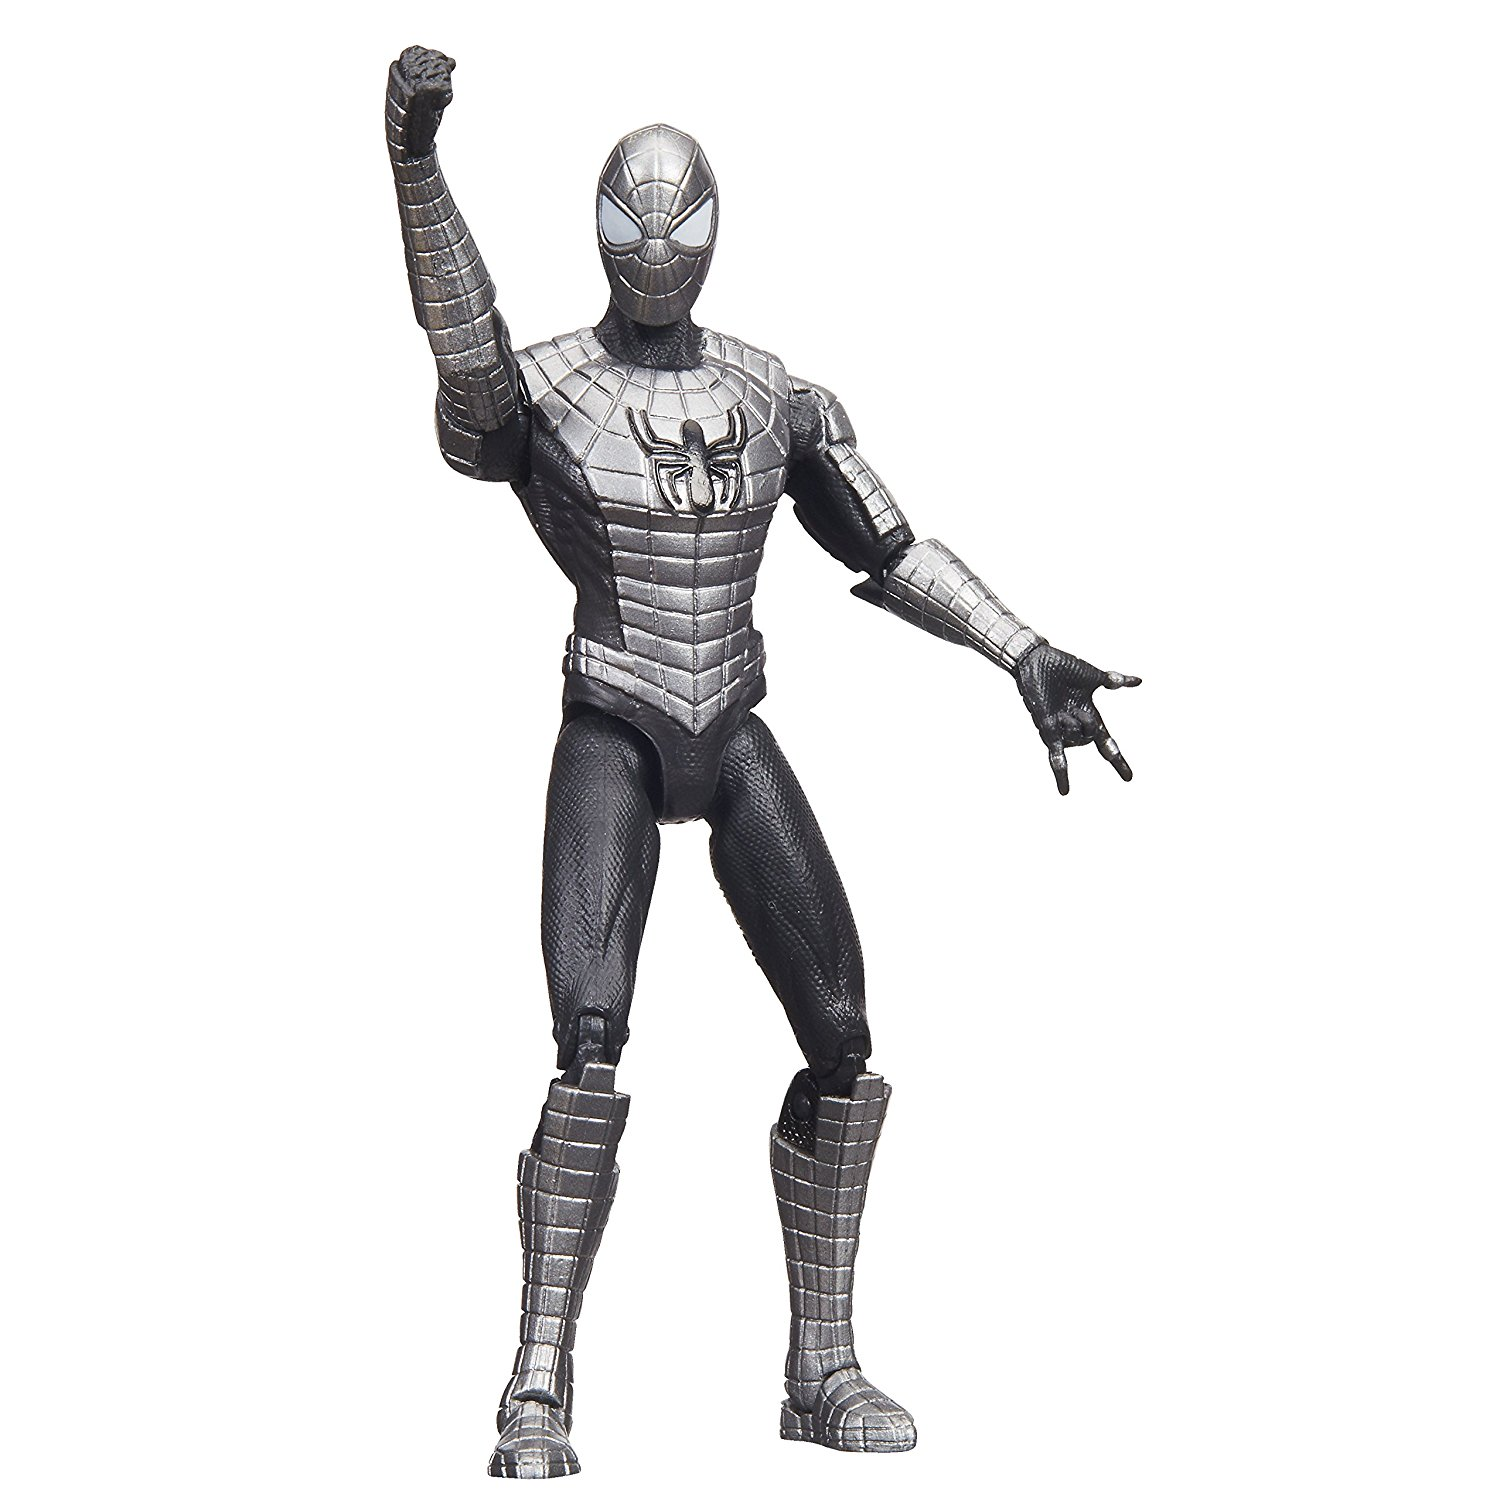 Spider-Man in Spider Armor as Marvel Legends